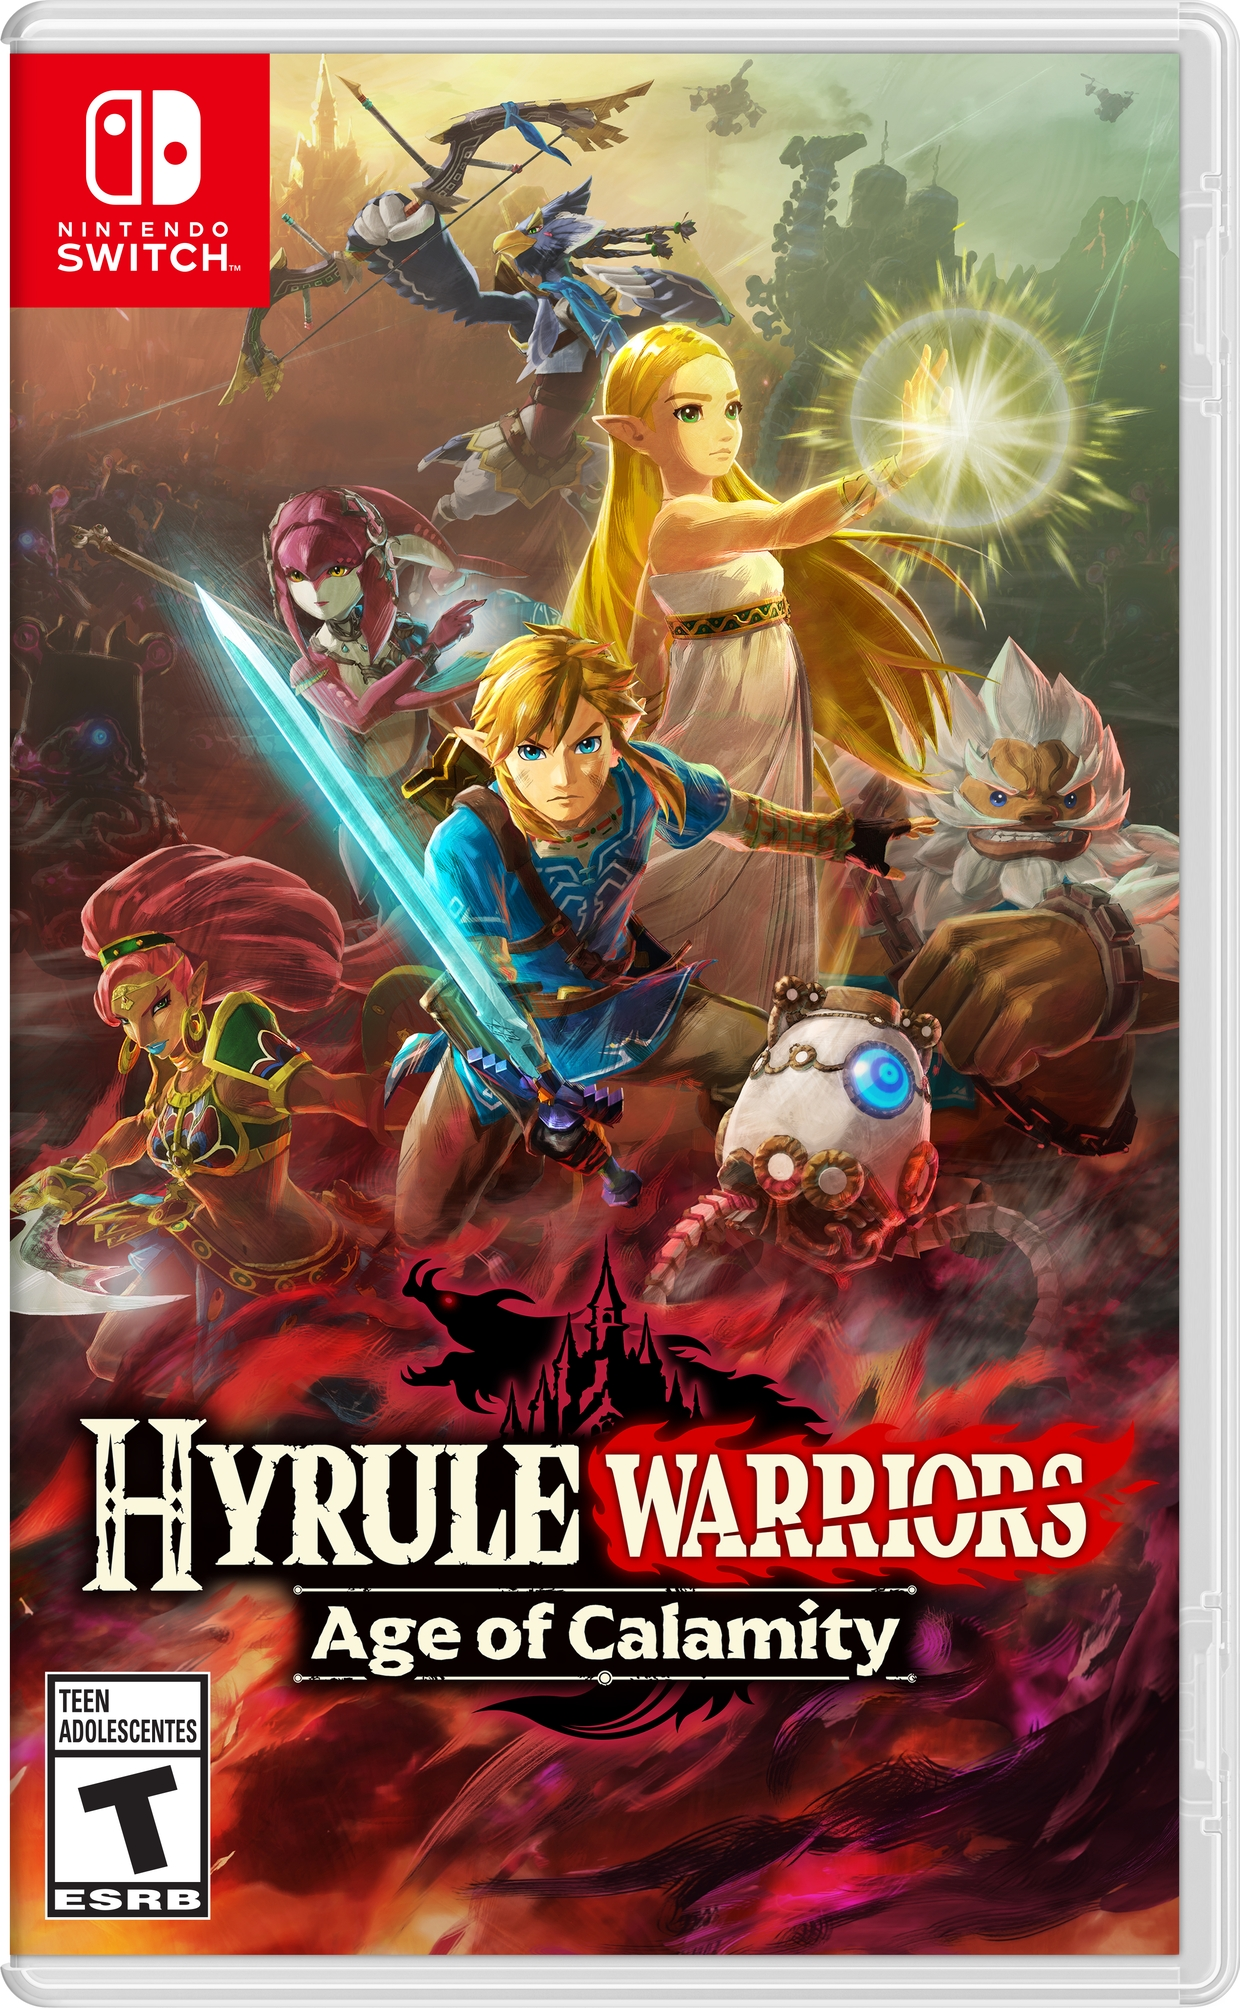 Breath Of The Wild Prequel Hyrule Warriors Age Of Calamity Is Coming To Nintendo Switch In November Vgc